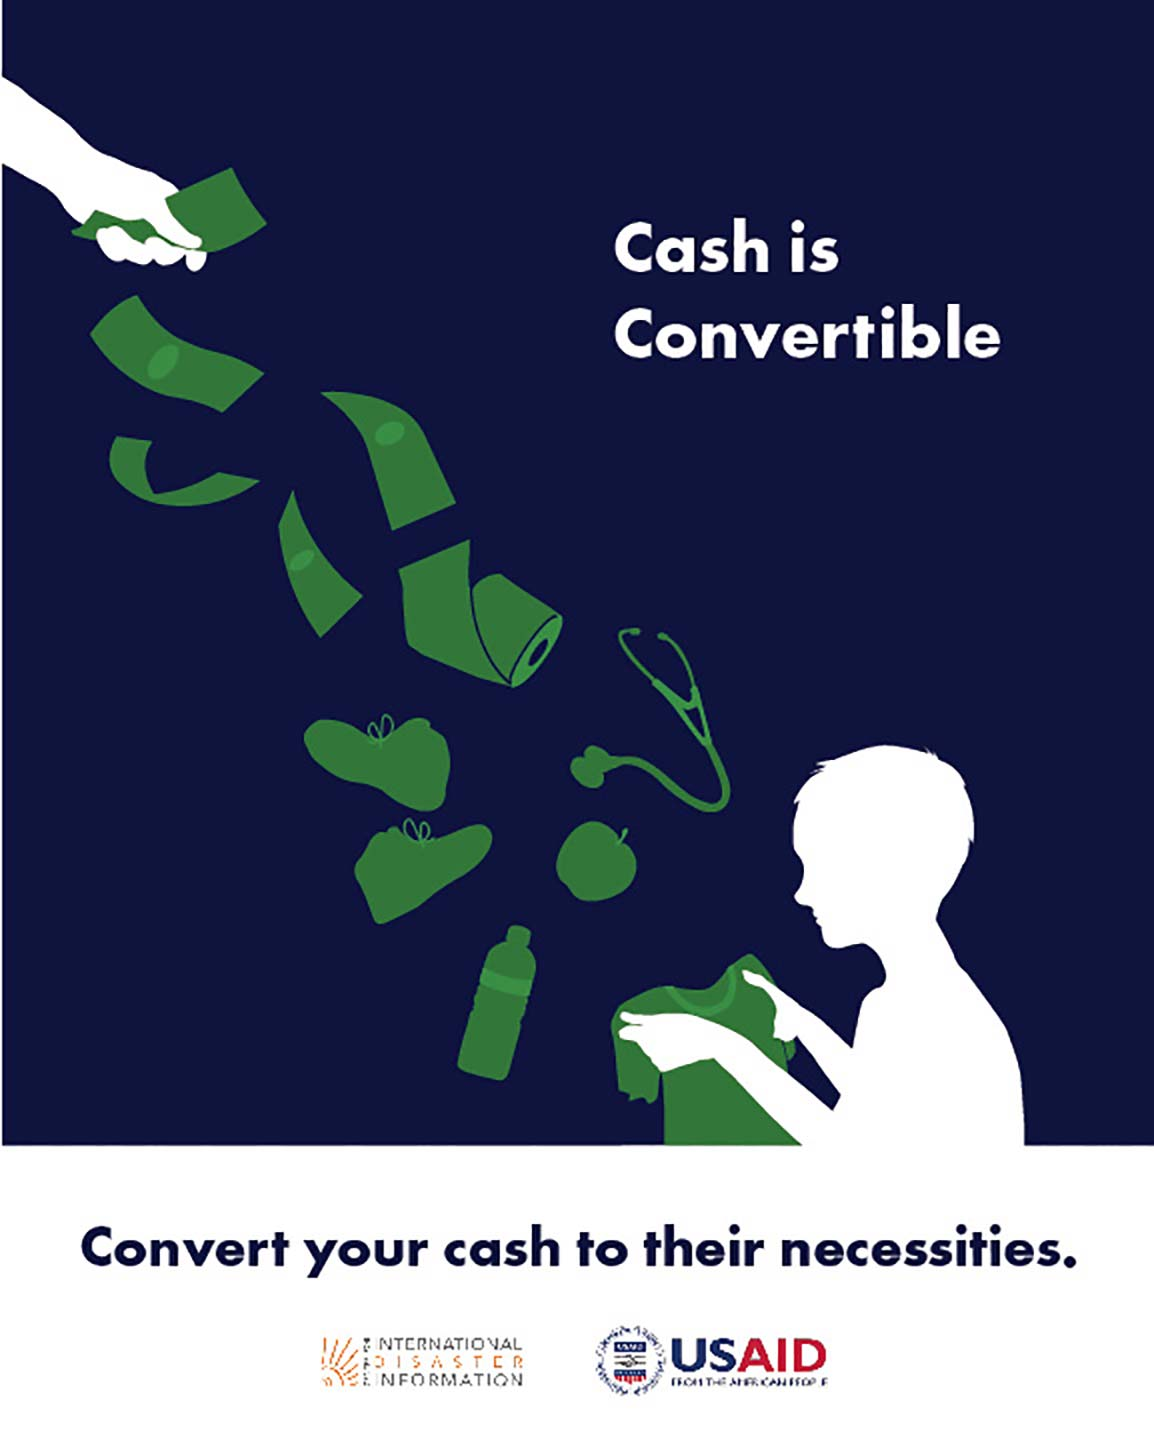 Cash is Convertible